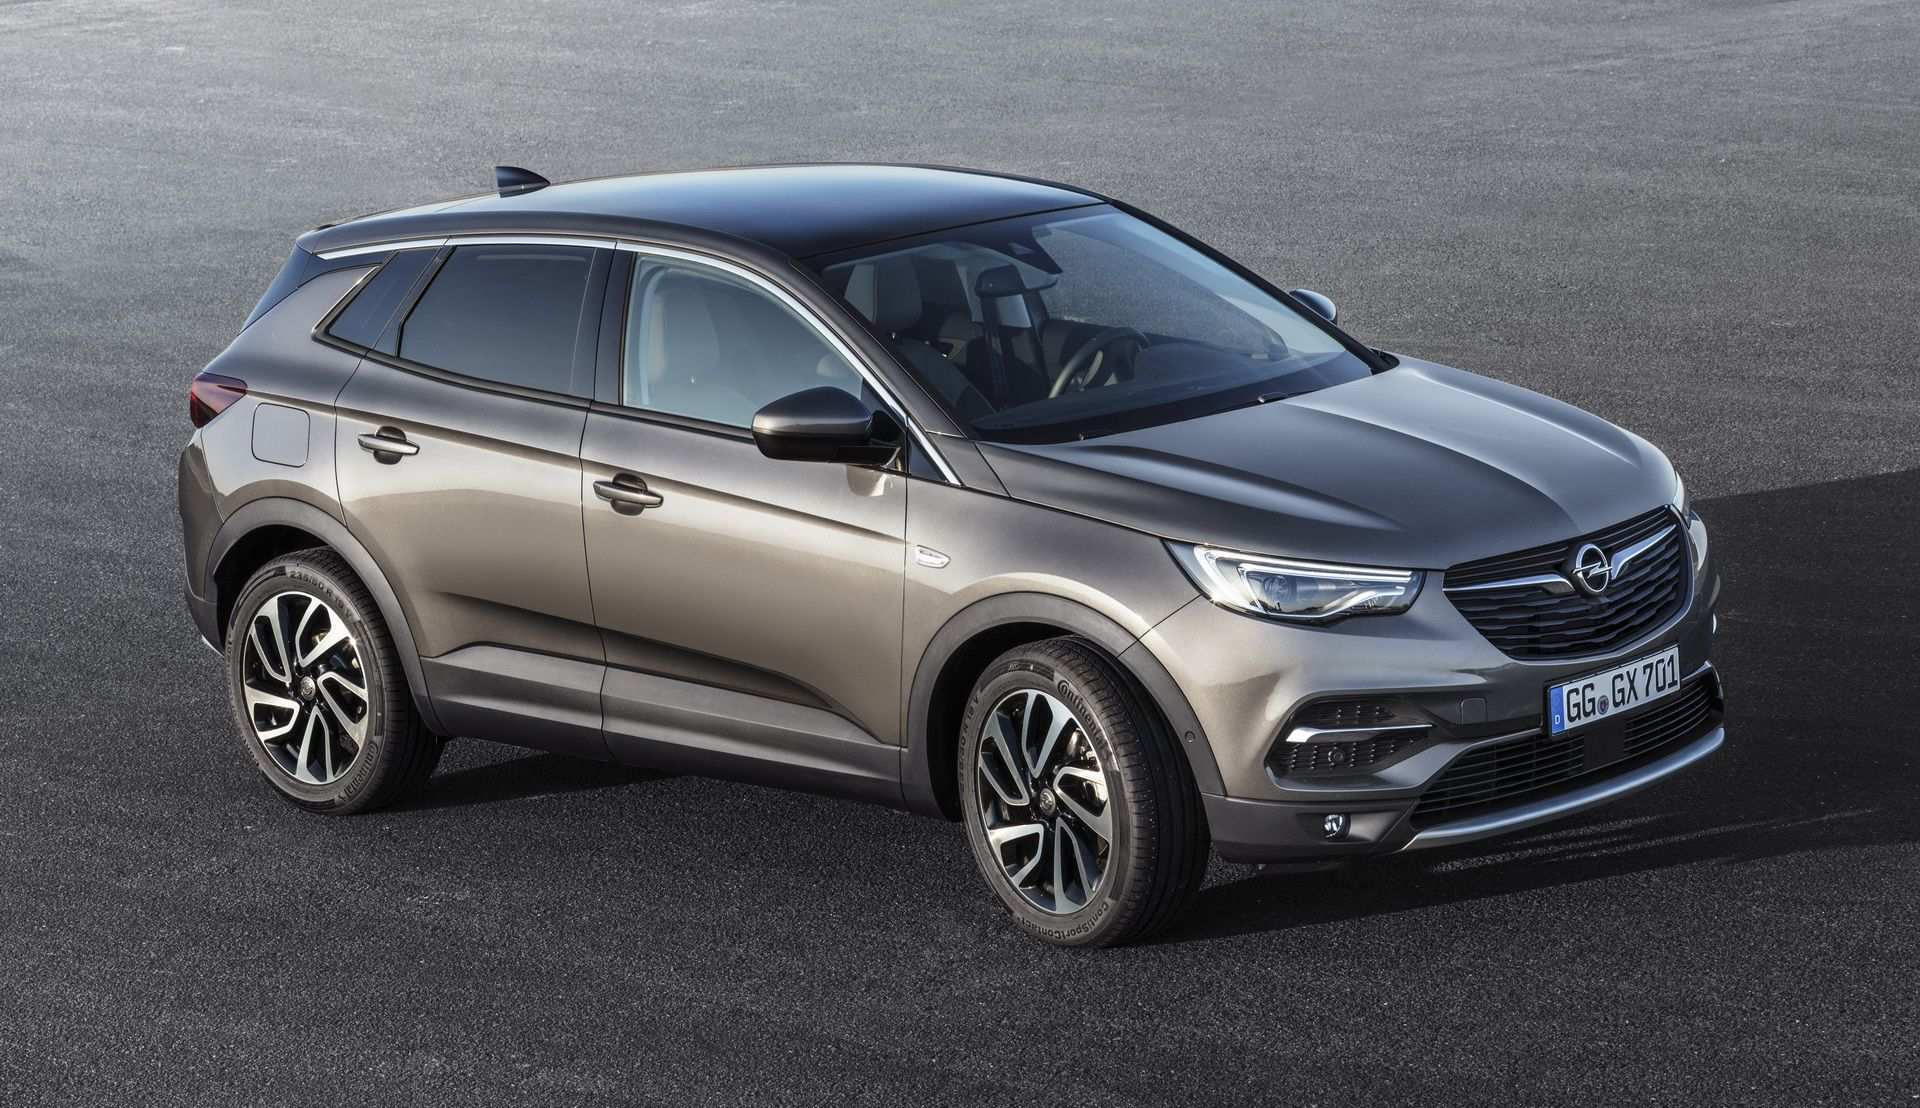 38 All New Opel Grandland X Facelift 2020 Specs And Review